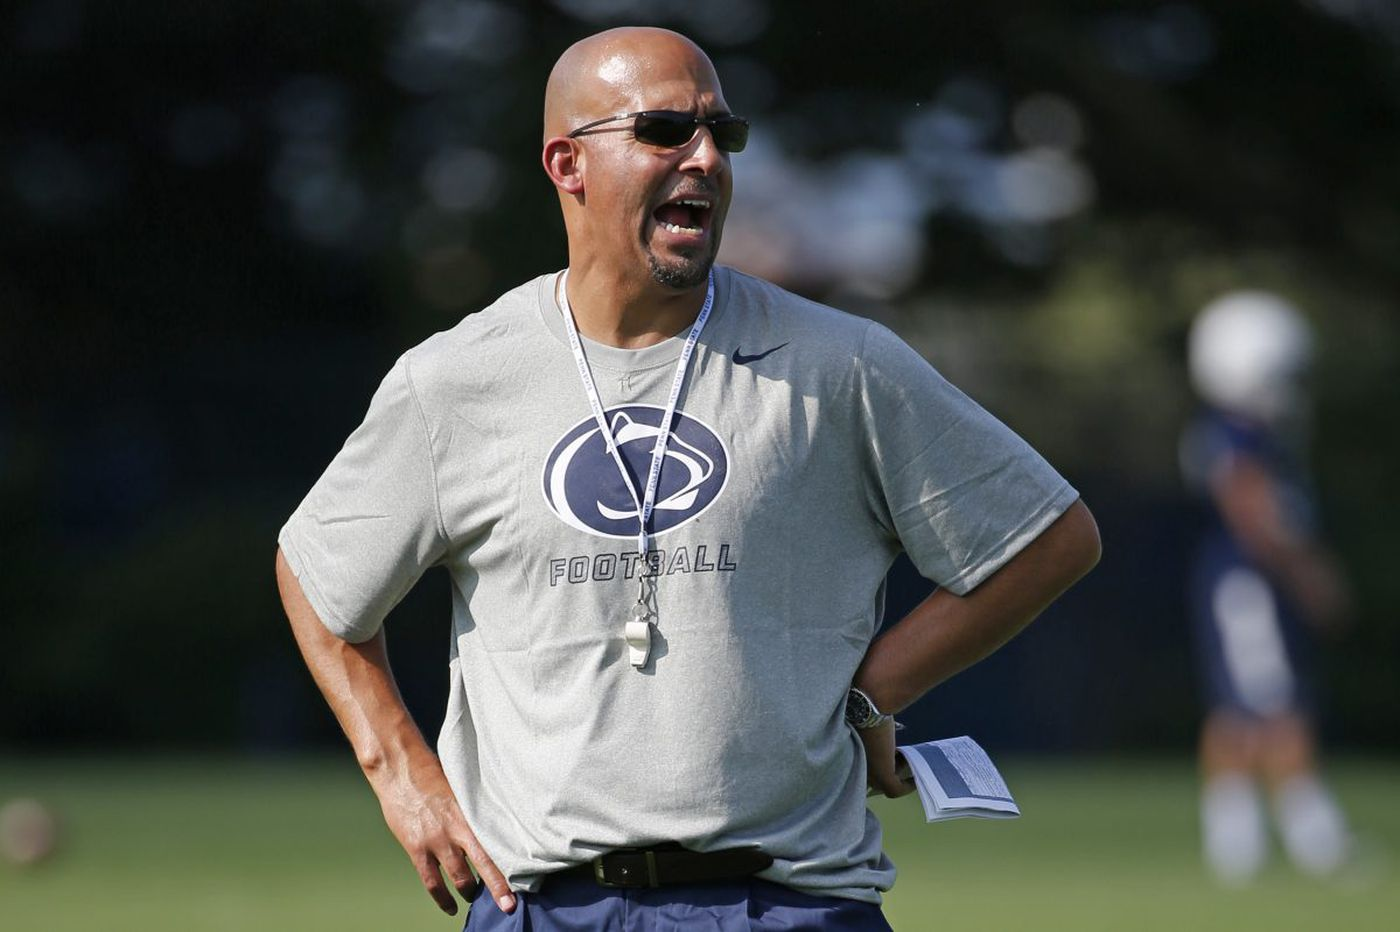 Penn State freshmen must show more intensity, James Franklin says